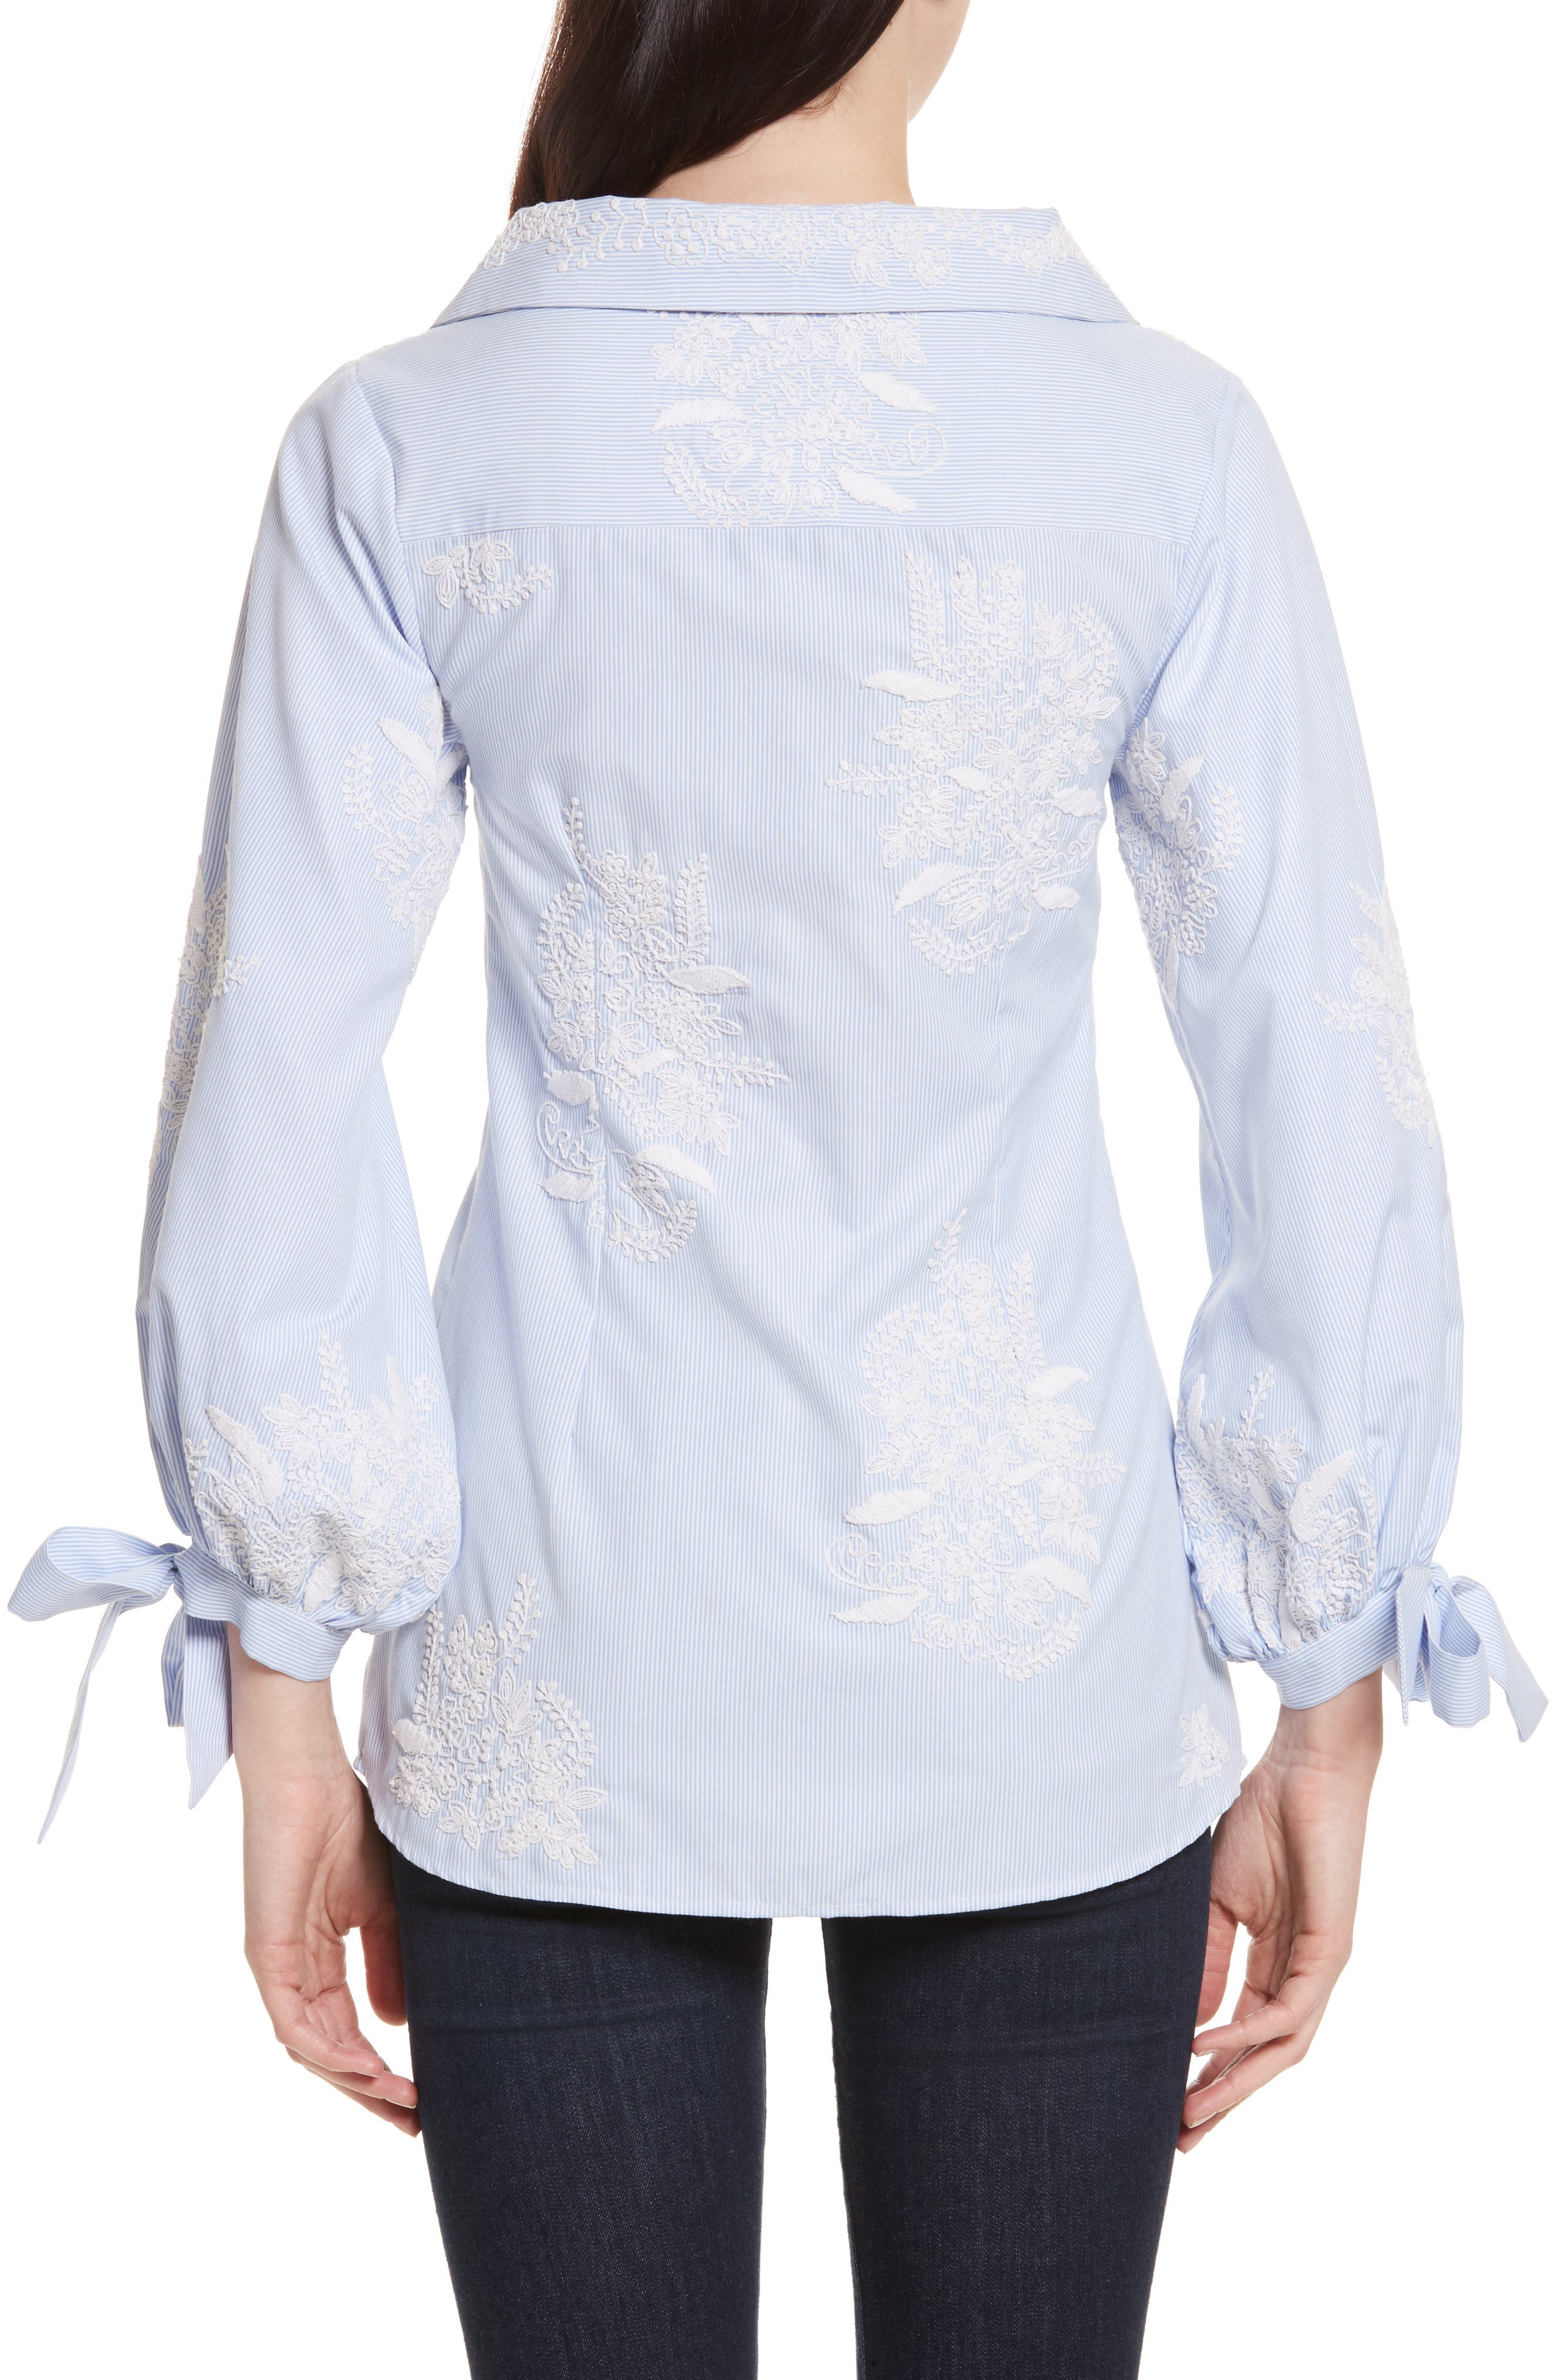 Toro Embroidered Tie Sleeve Blouse,                             Alternate thumbnail 2, color,                             422